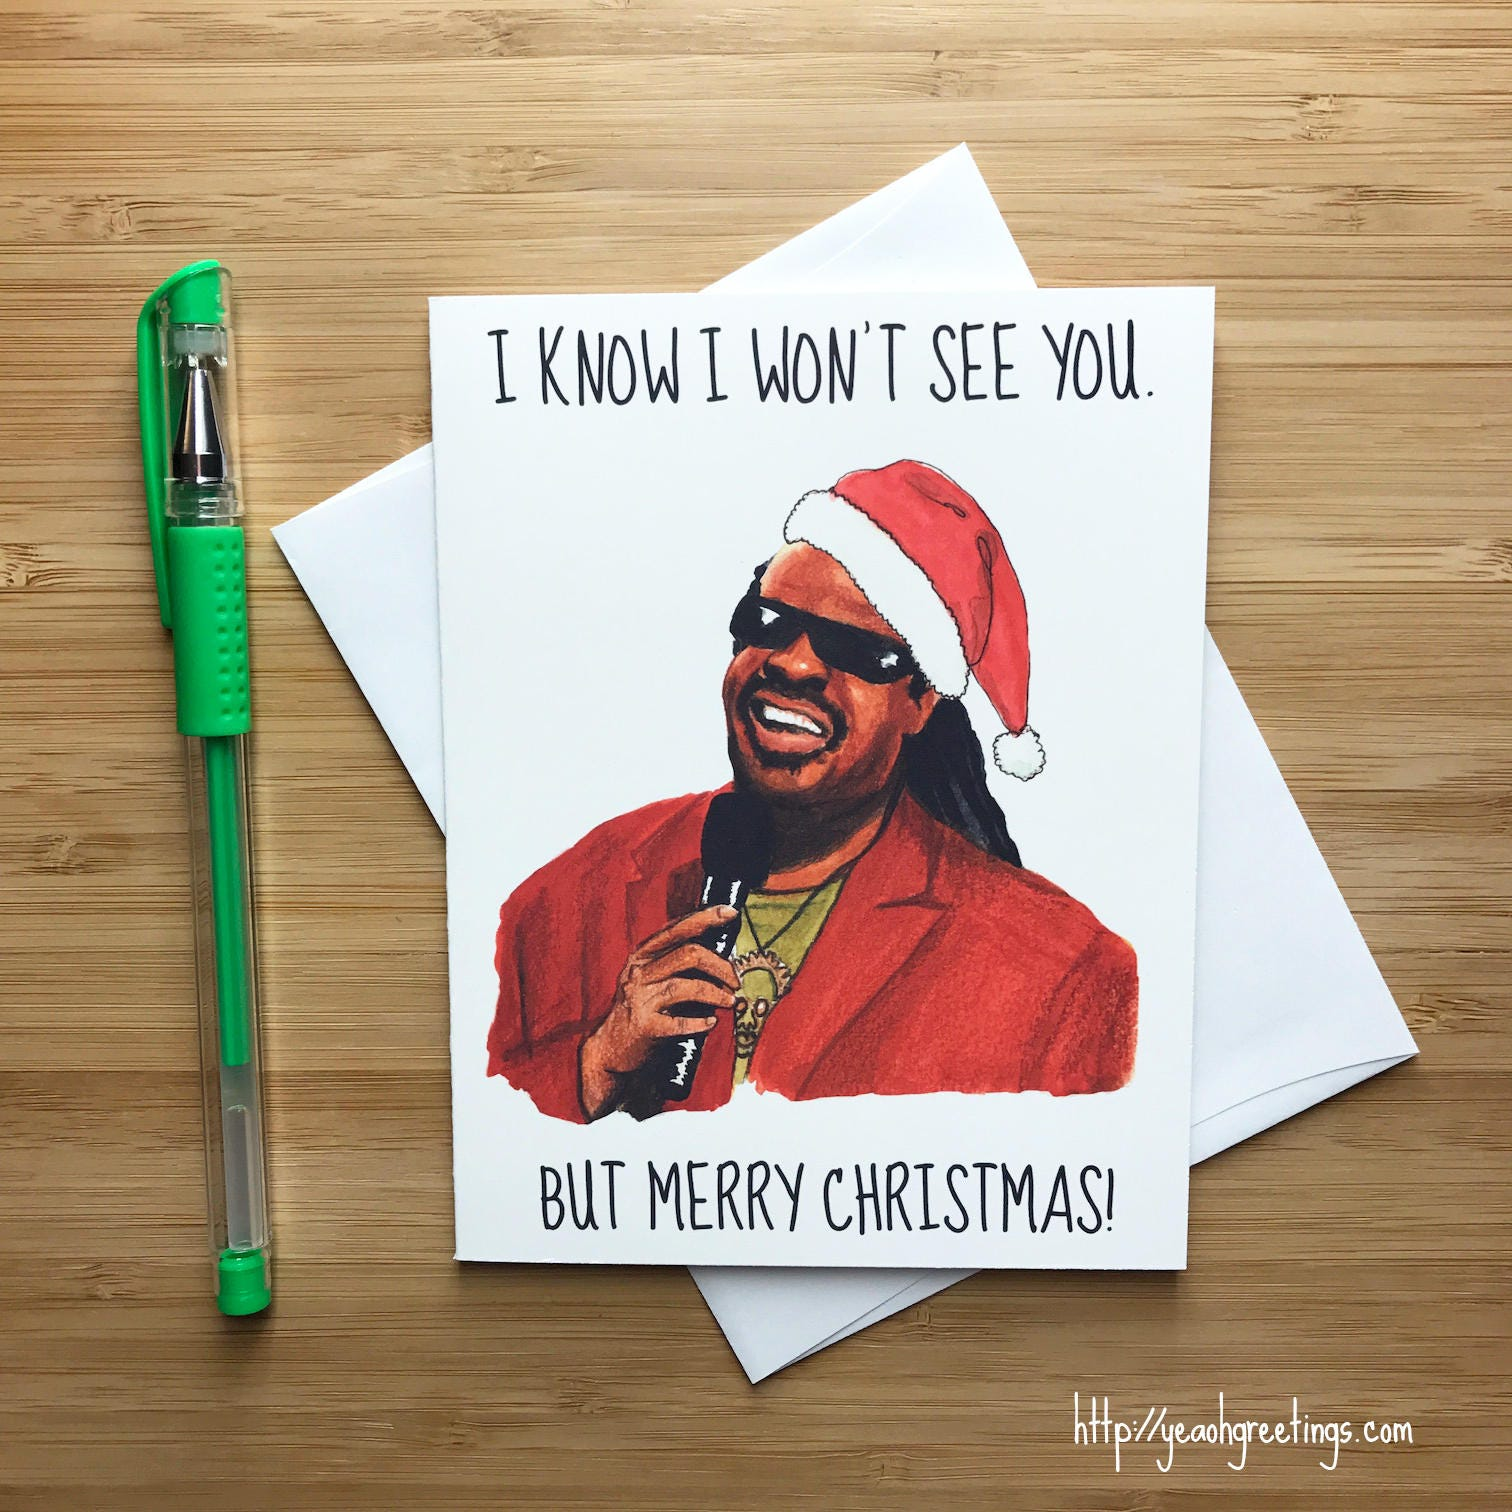 Funny Stevie Christmas Card Inappropriate Christmas Humor | Etsy